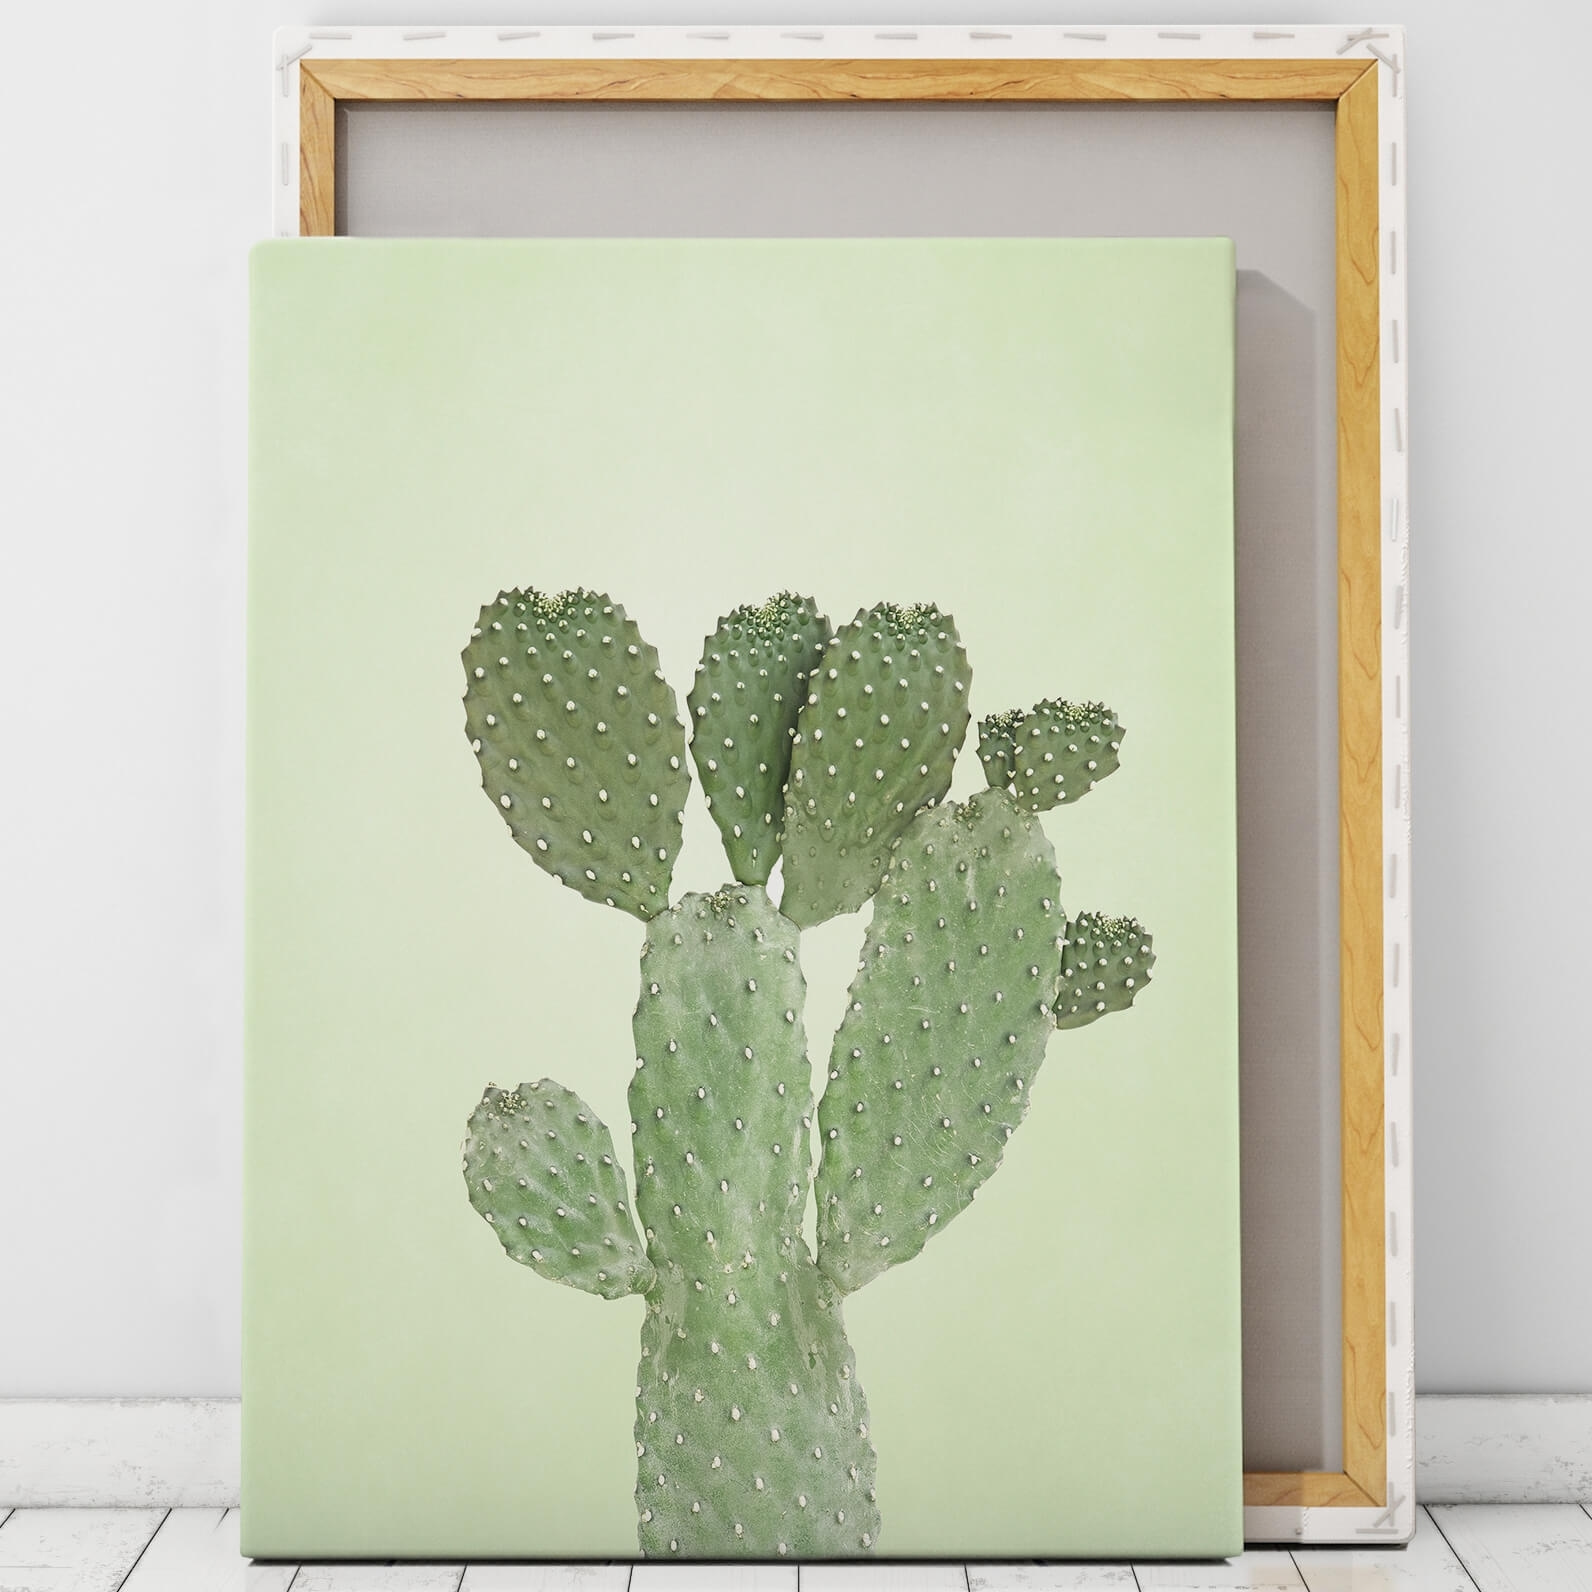 Green Cactus Wall Art Print | Artworld Art World intended for Cactus Wall Art (Image 14 of 20)